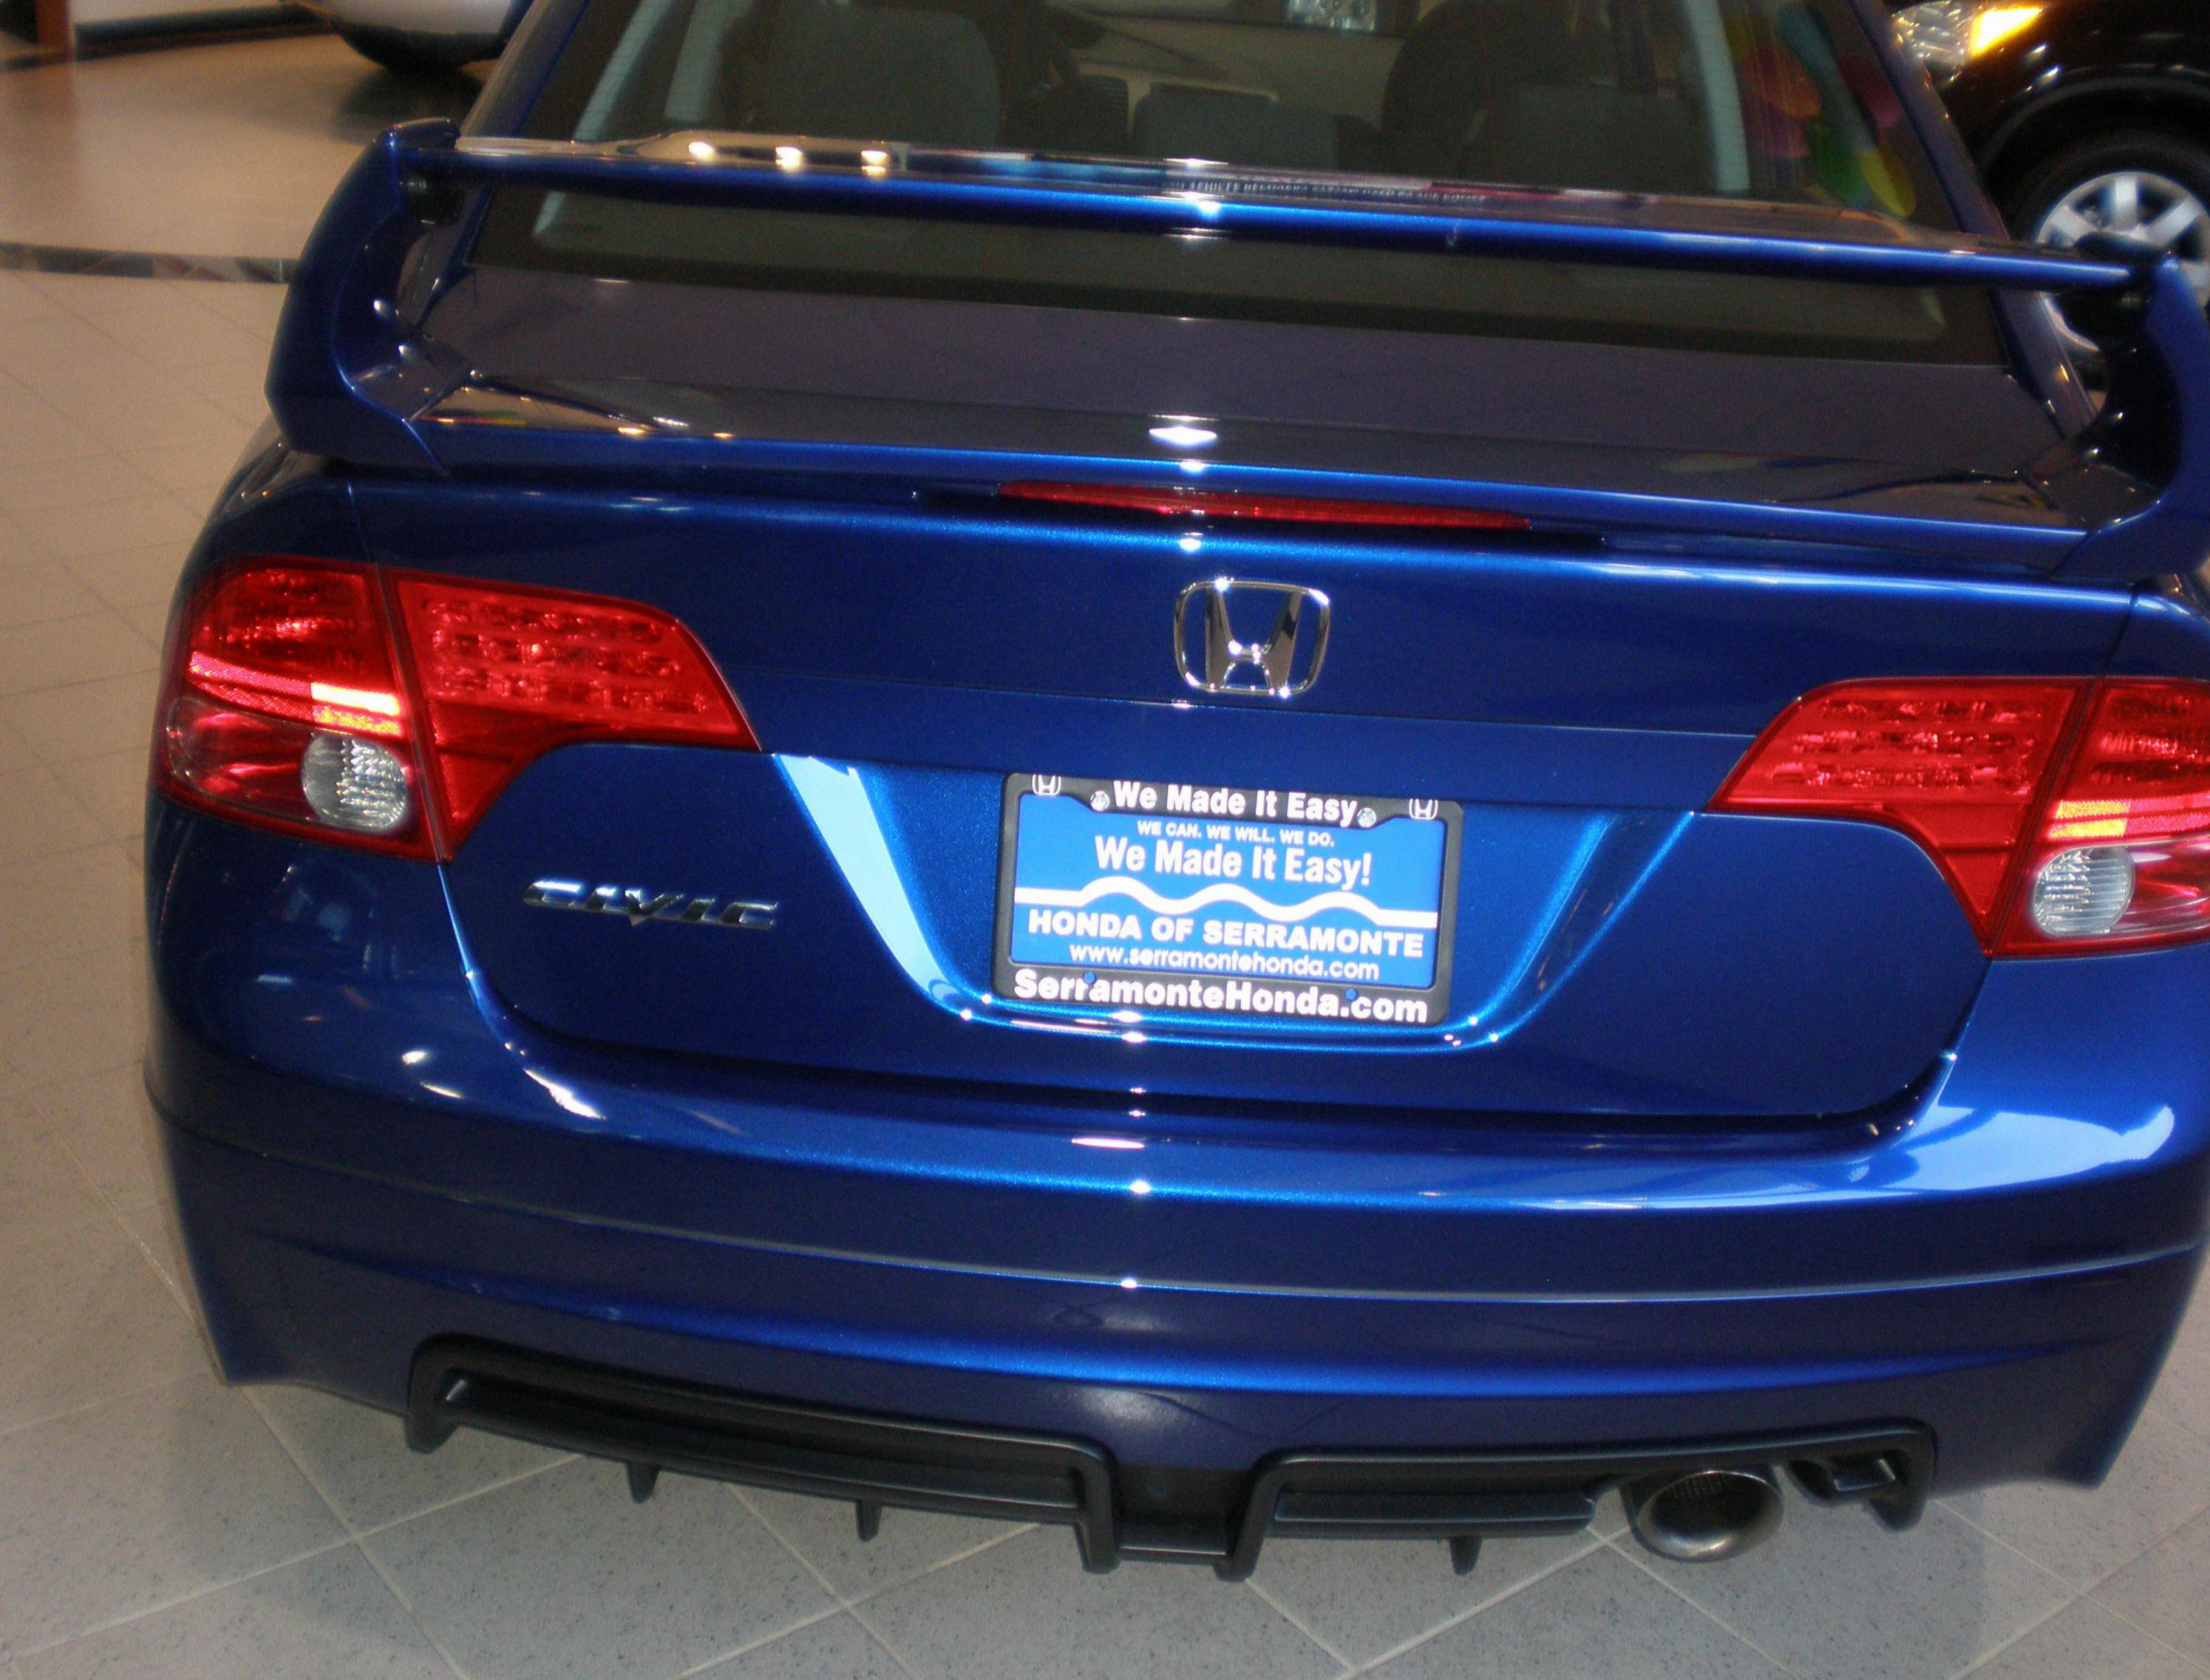 Honda Civic Si Sedan lease coupe